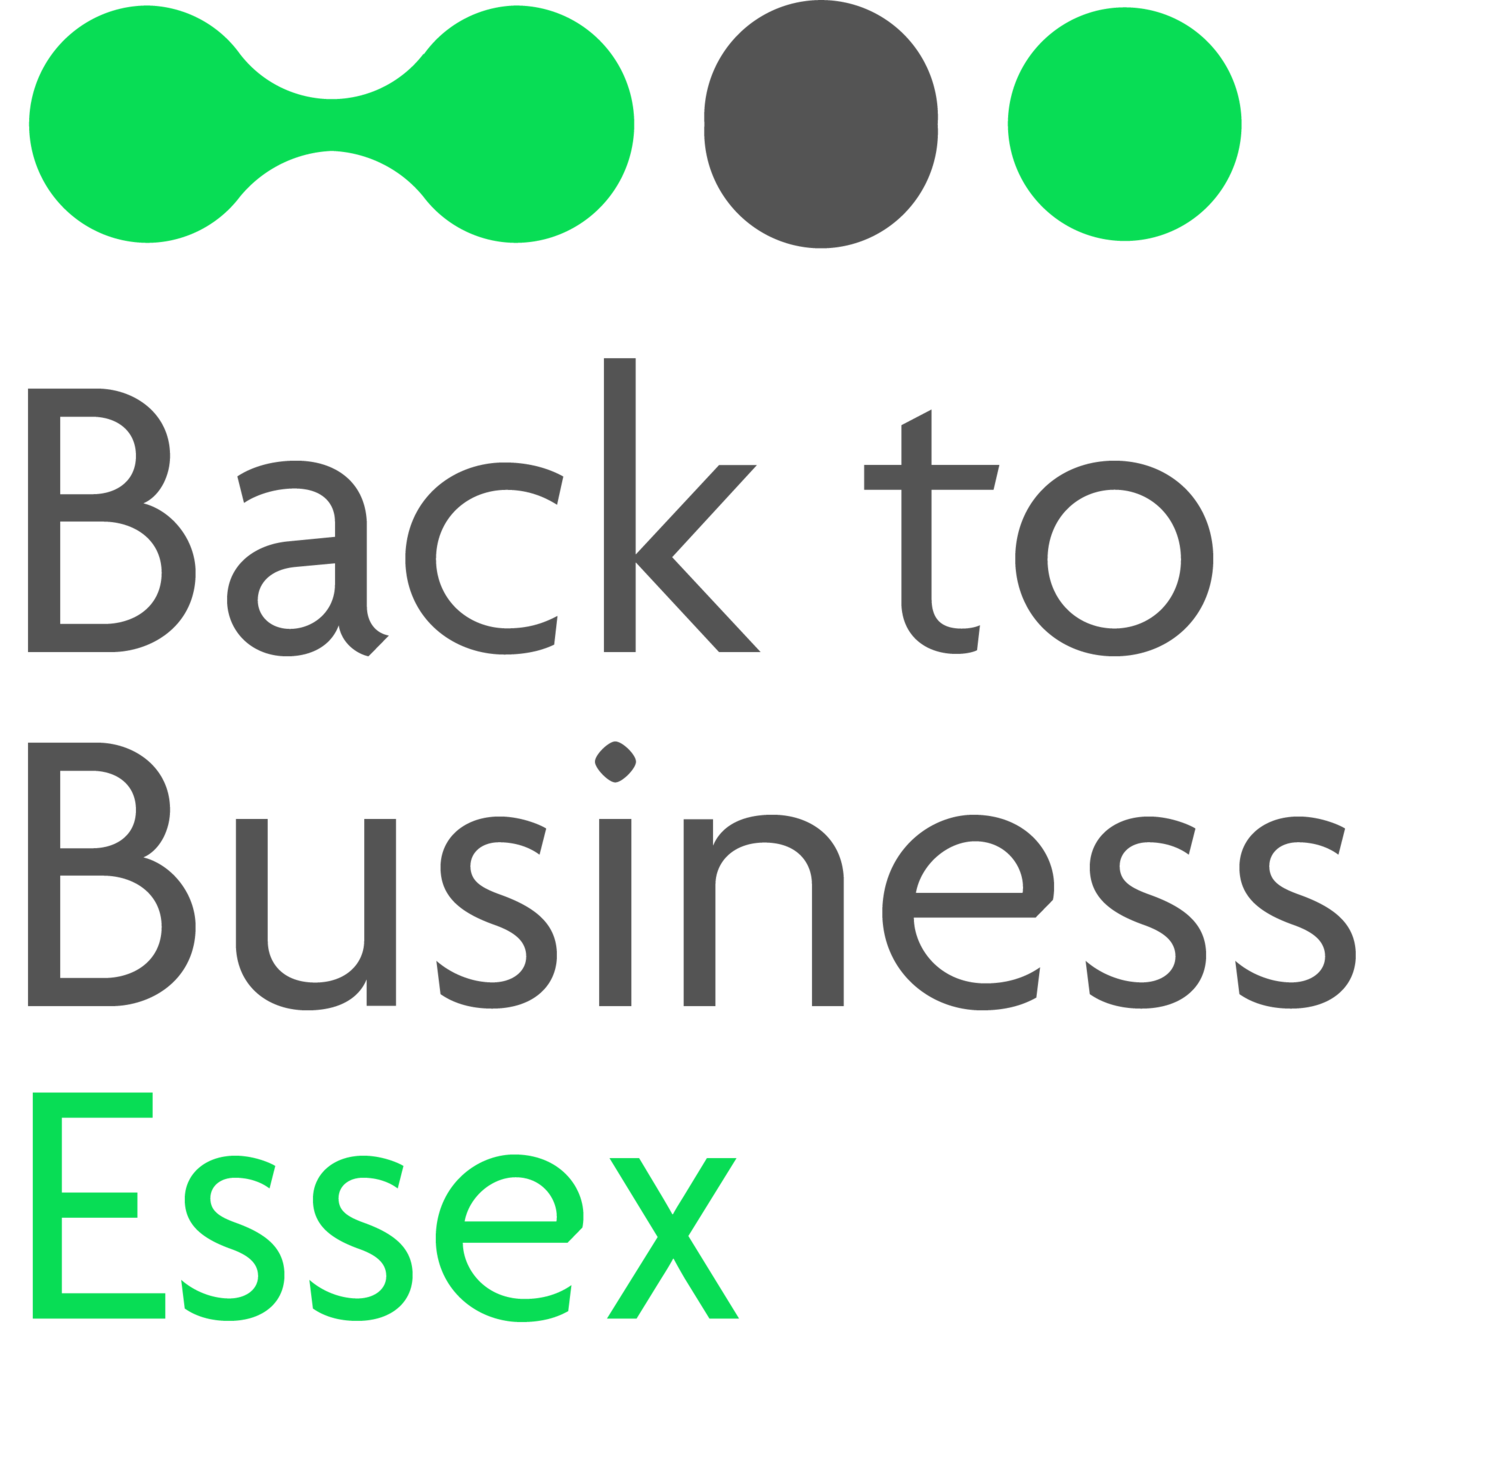 Back to Business Essex